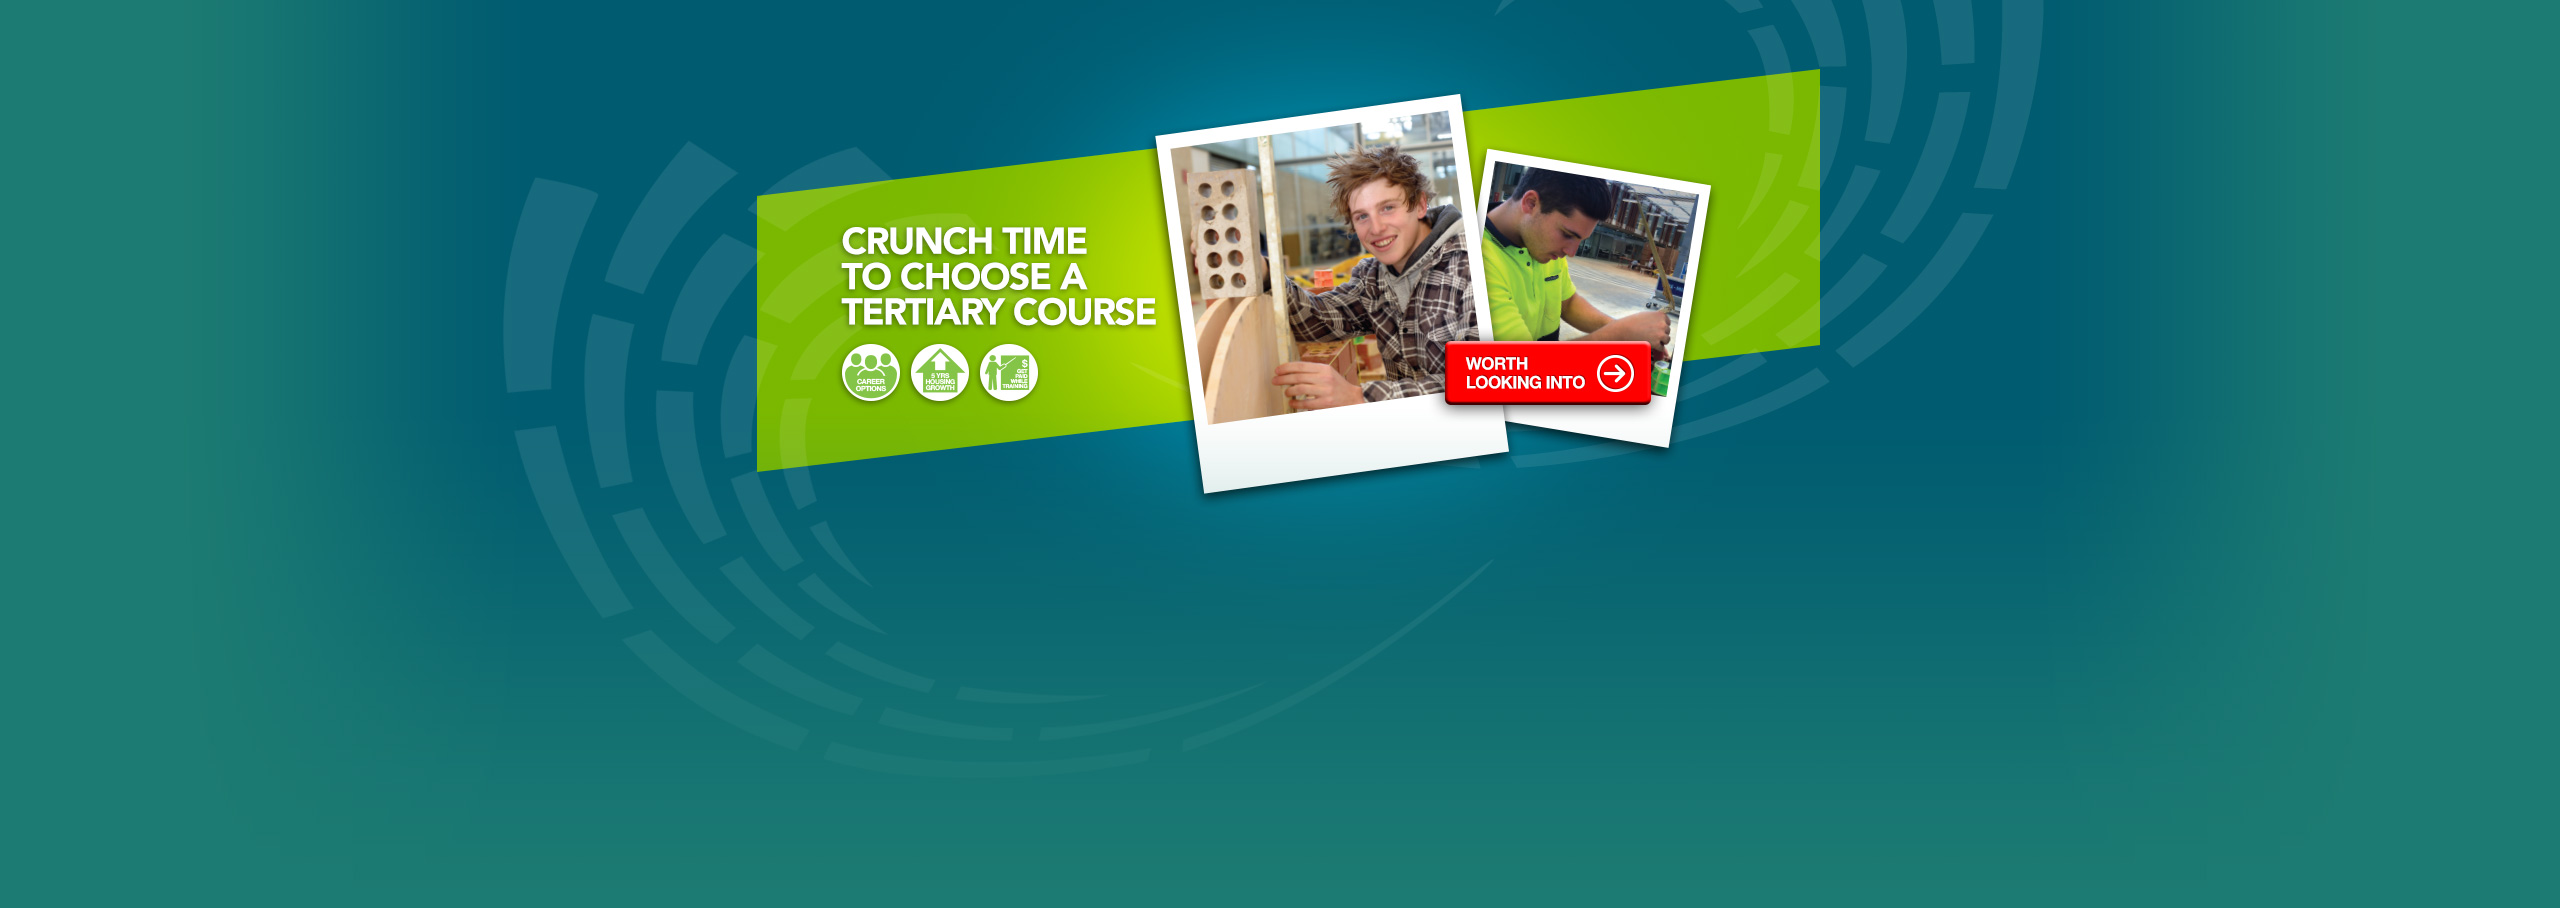 Cruch time to choose your Tertiary Course